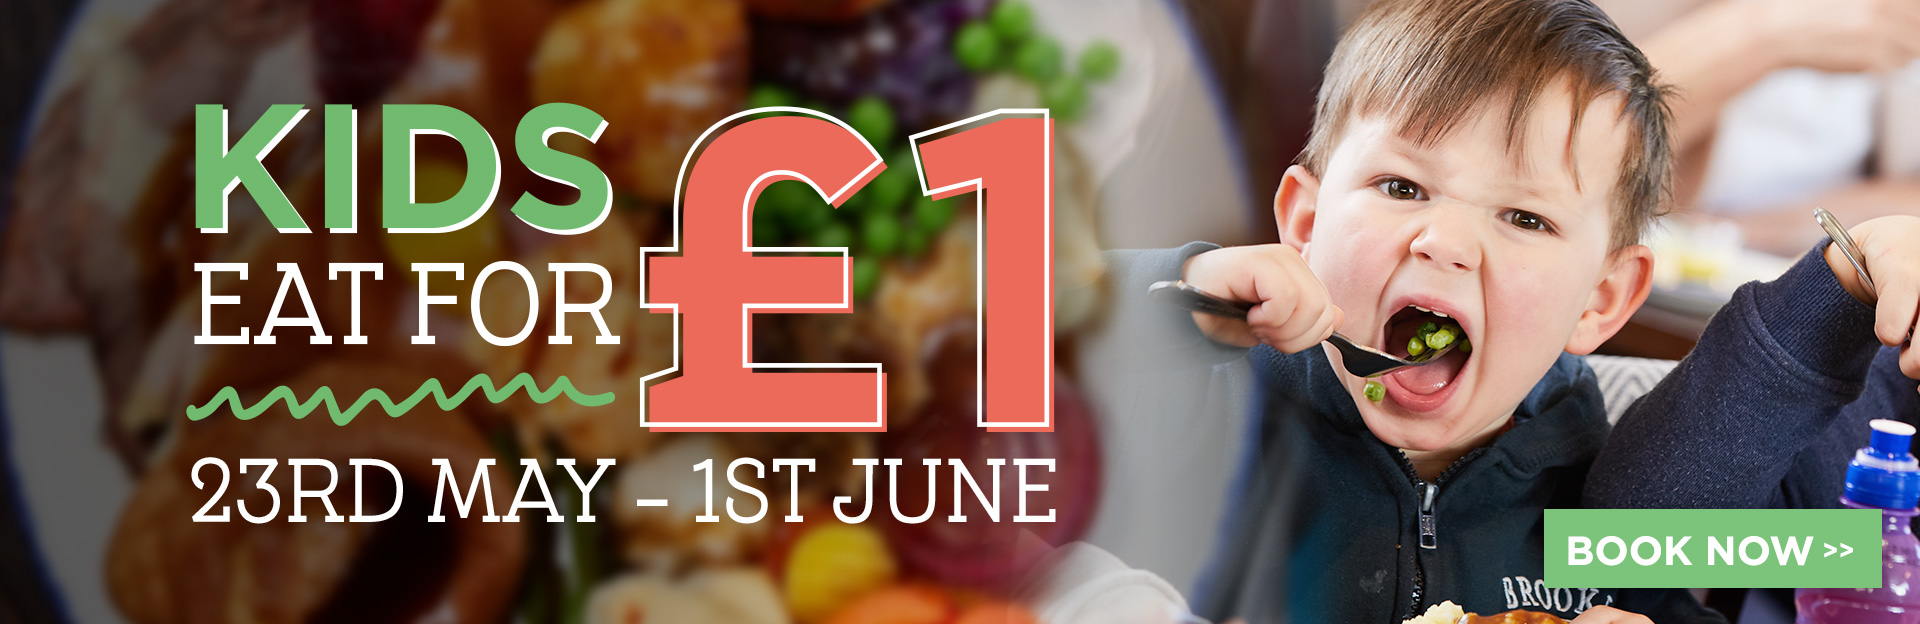 Kids eat for £1 at The Bells of St Marys